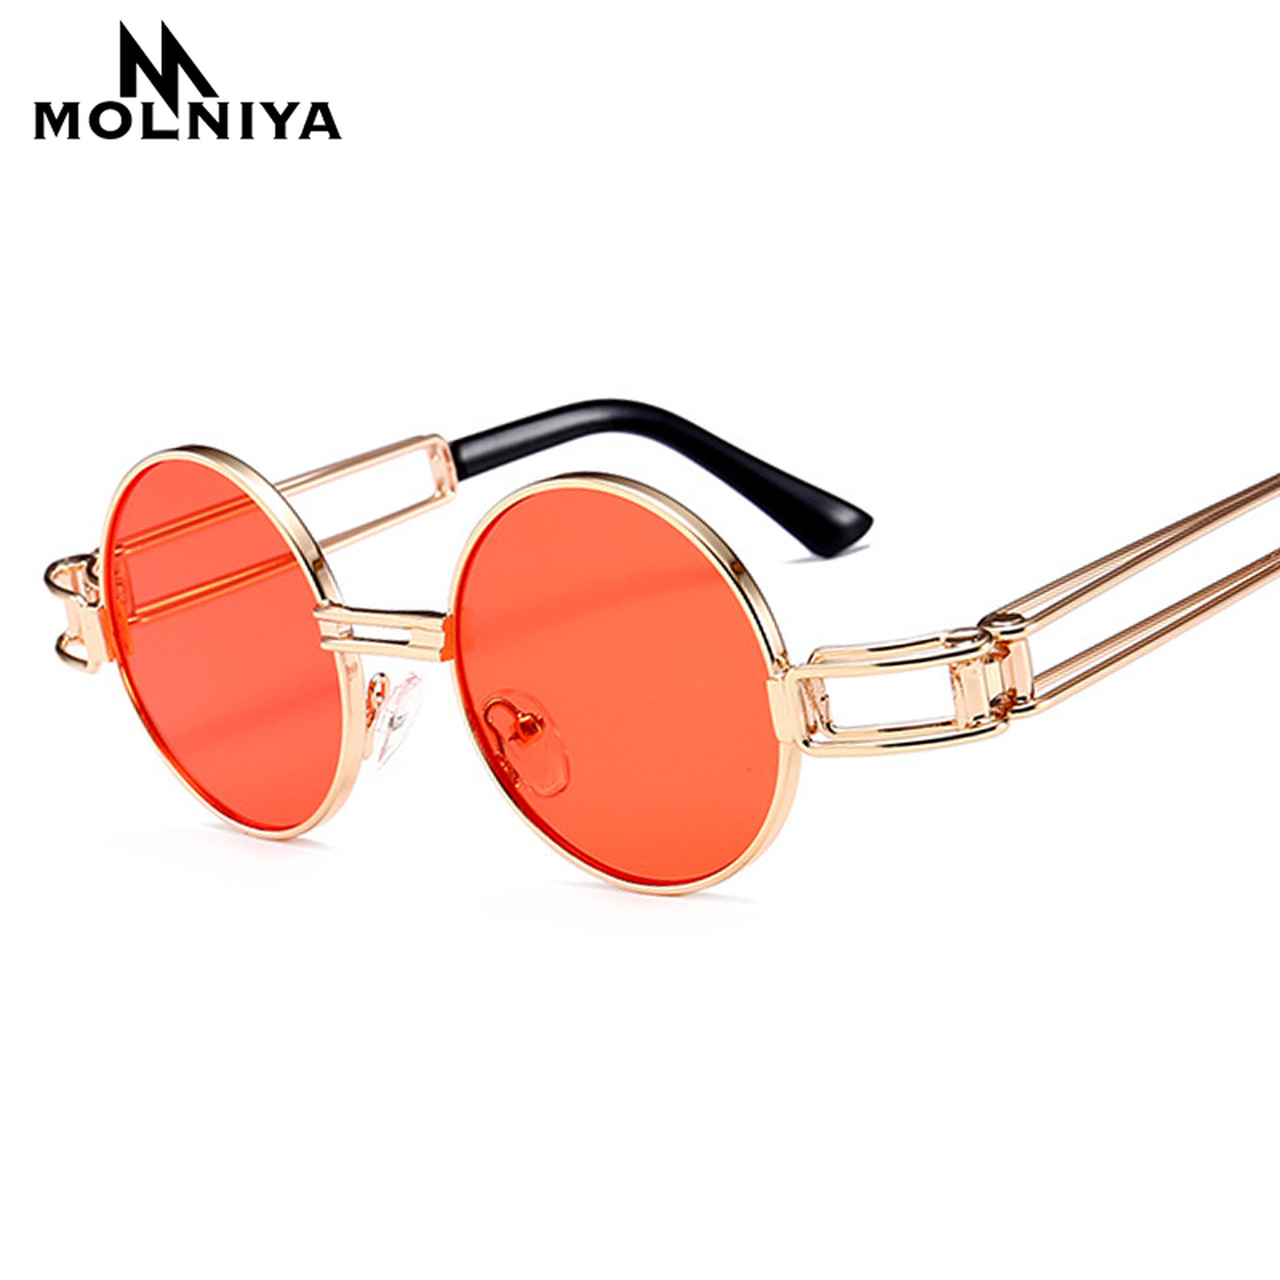 a2346ce0d8 MOLNIYA New Small Round Sunglasses Men Retro Red Yellow 2019 Gold Frame Steampunk  Round Metal Sun Glasses for women unisex - OnshopDeals.Com